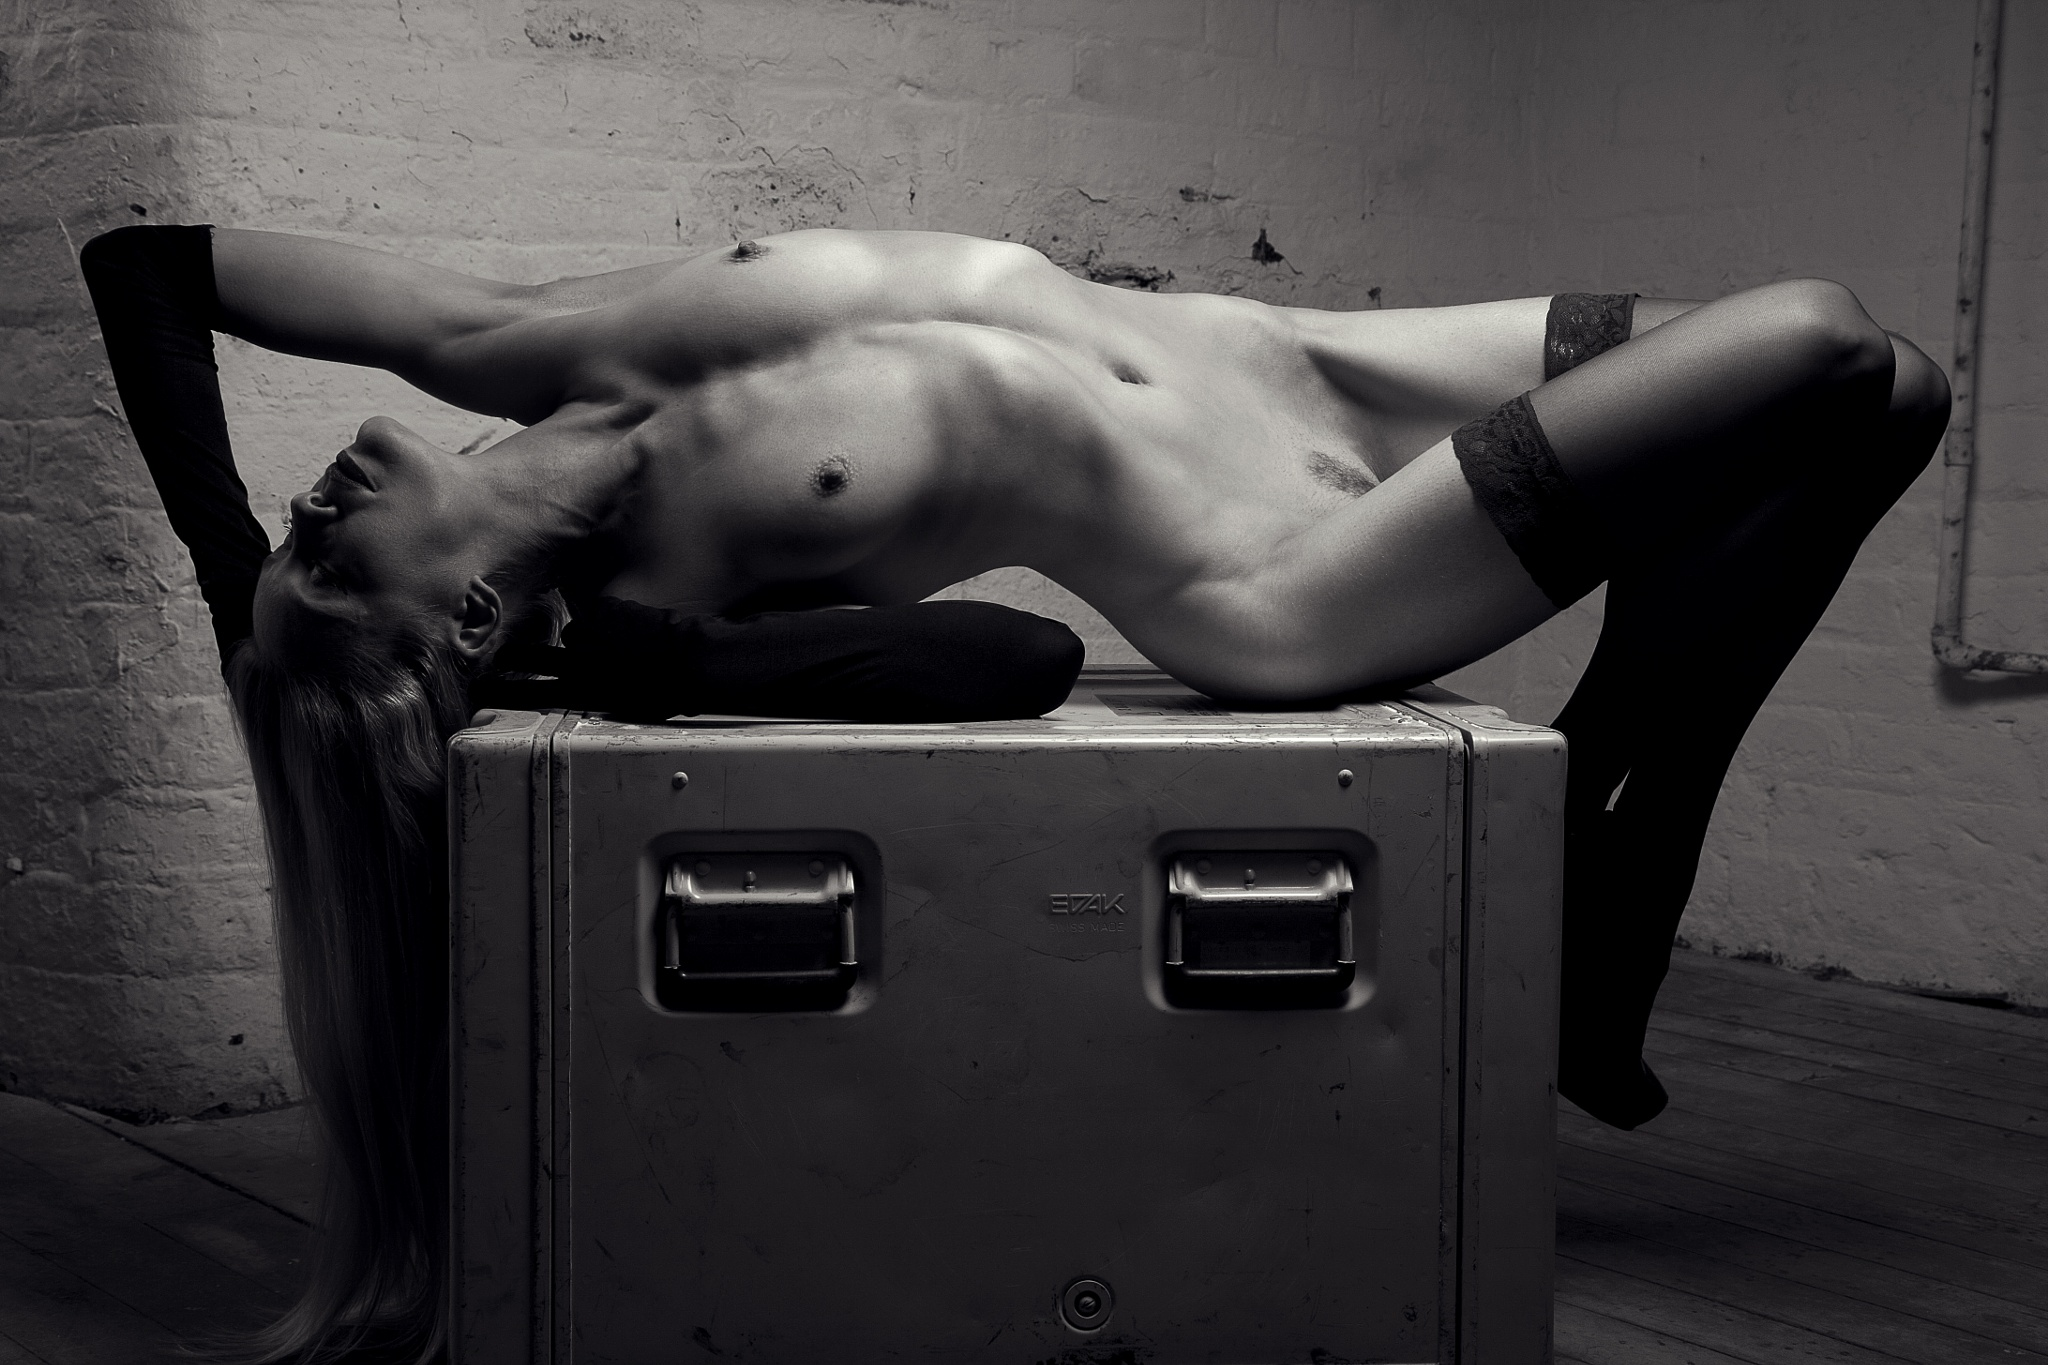 Erotic on a Box by NickJamesPhotography